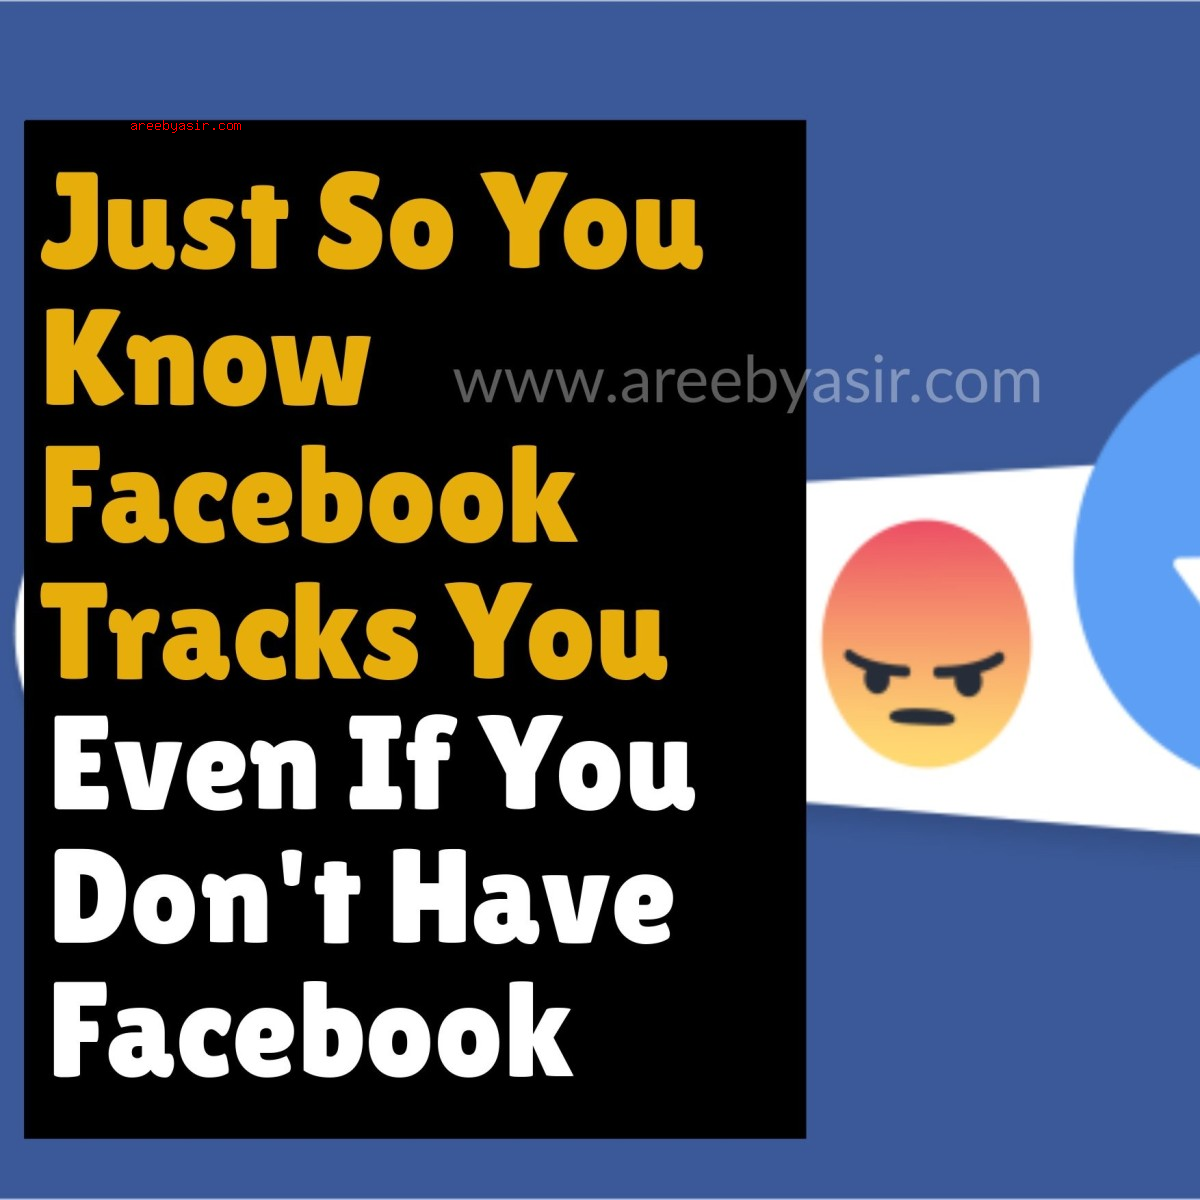 Facebook Tracks Non-Users Too!